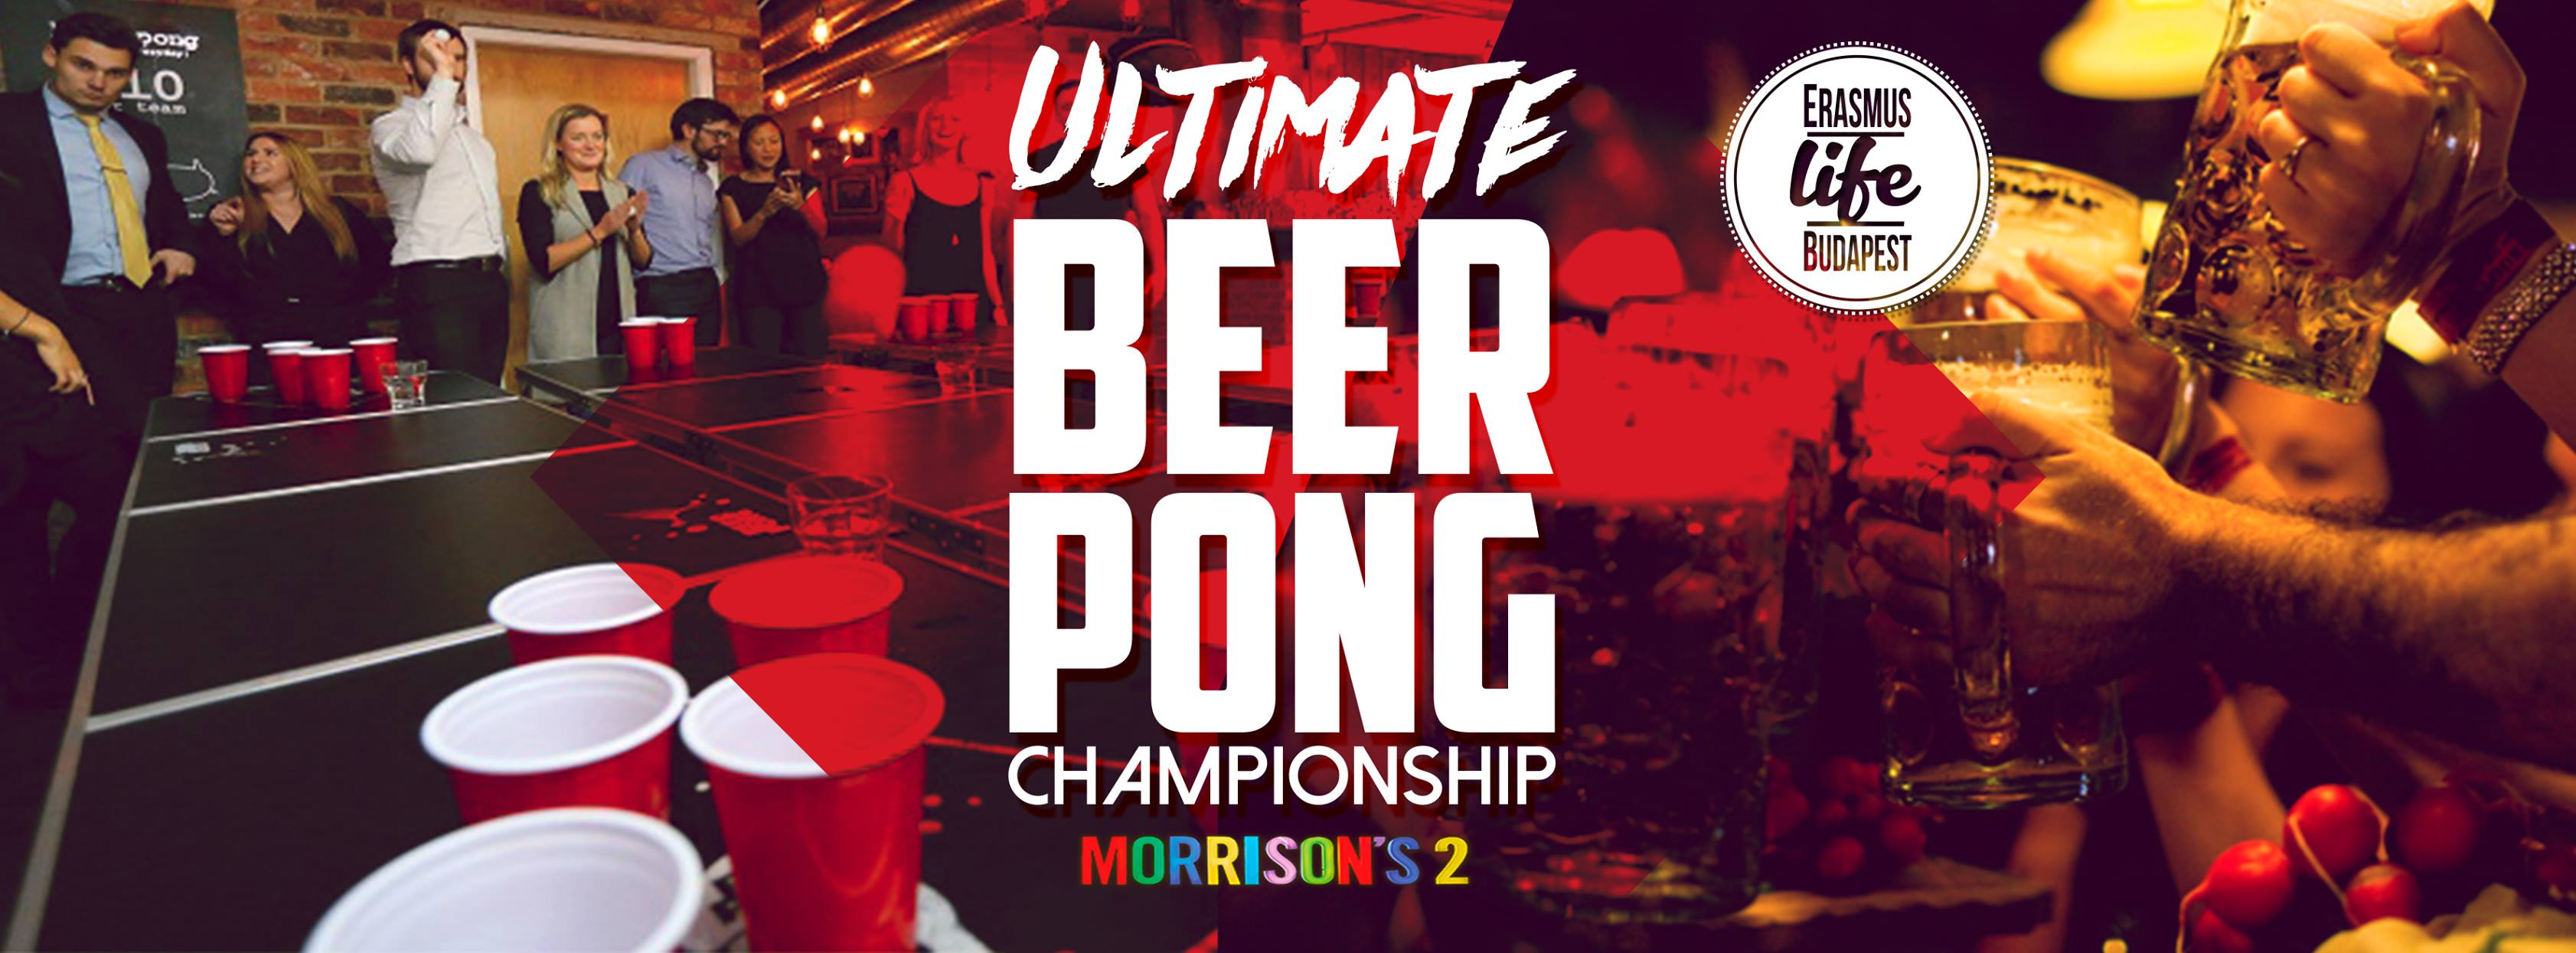 Beer Pong event cover